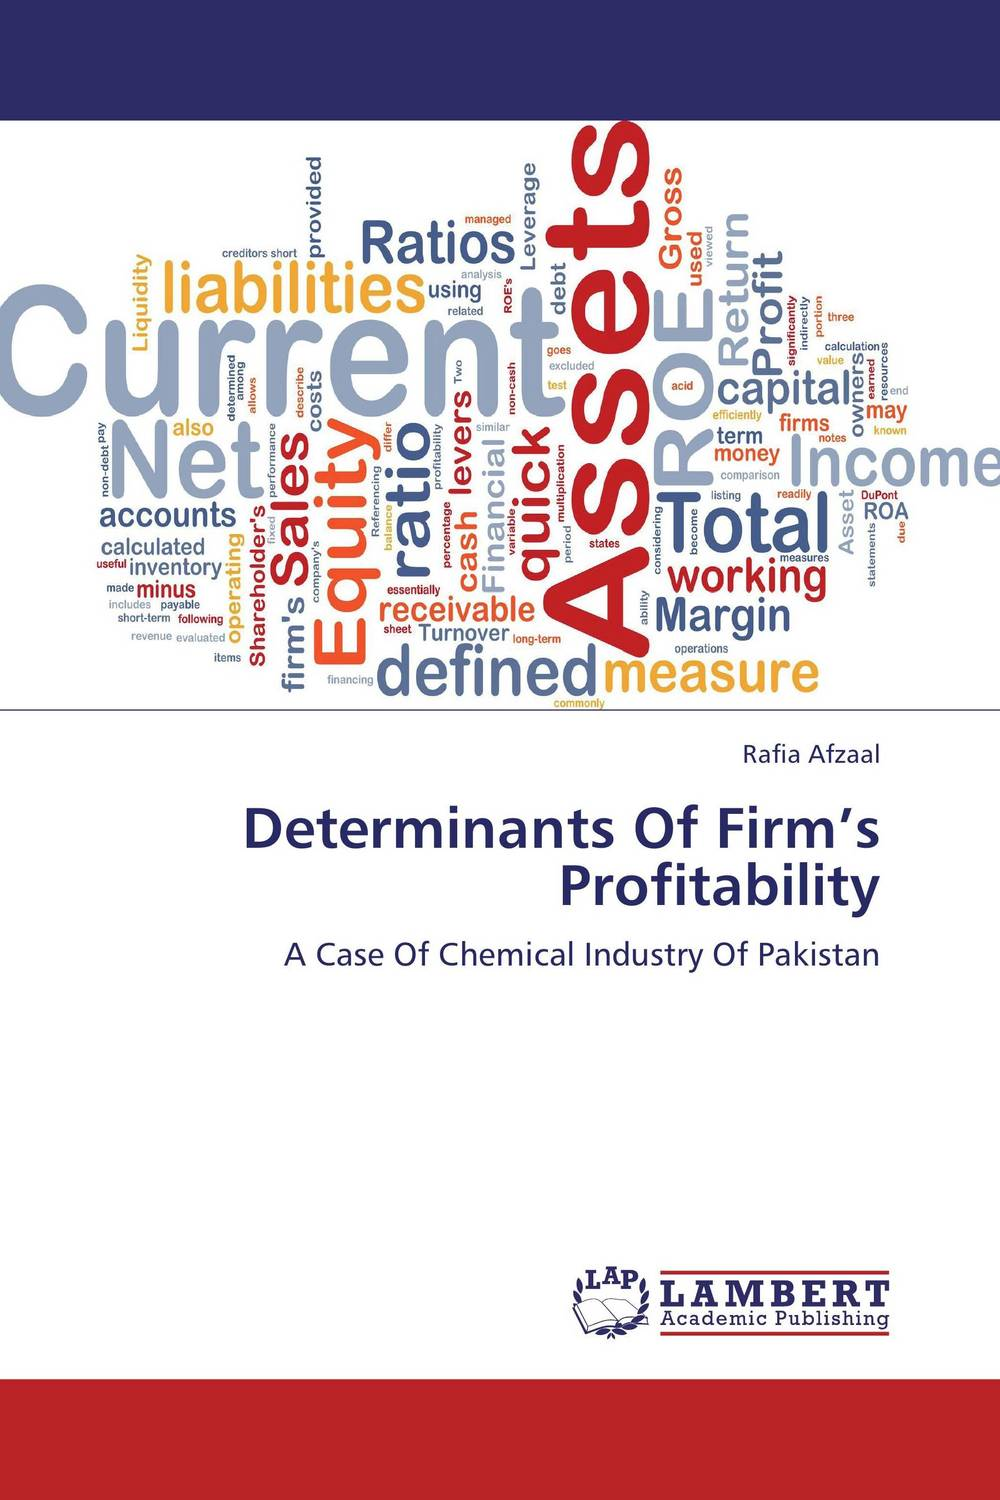 Determinants Of Firm's Profitability corporate governance and firm value